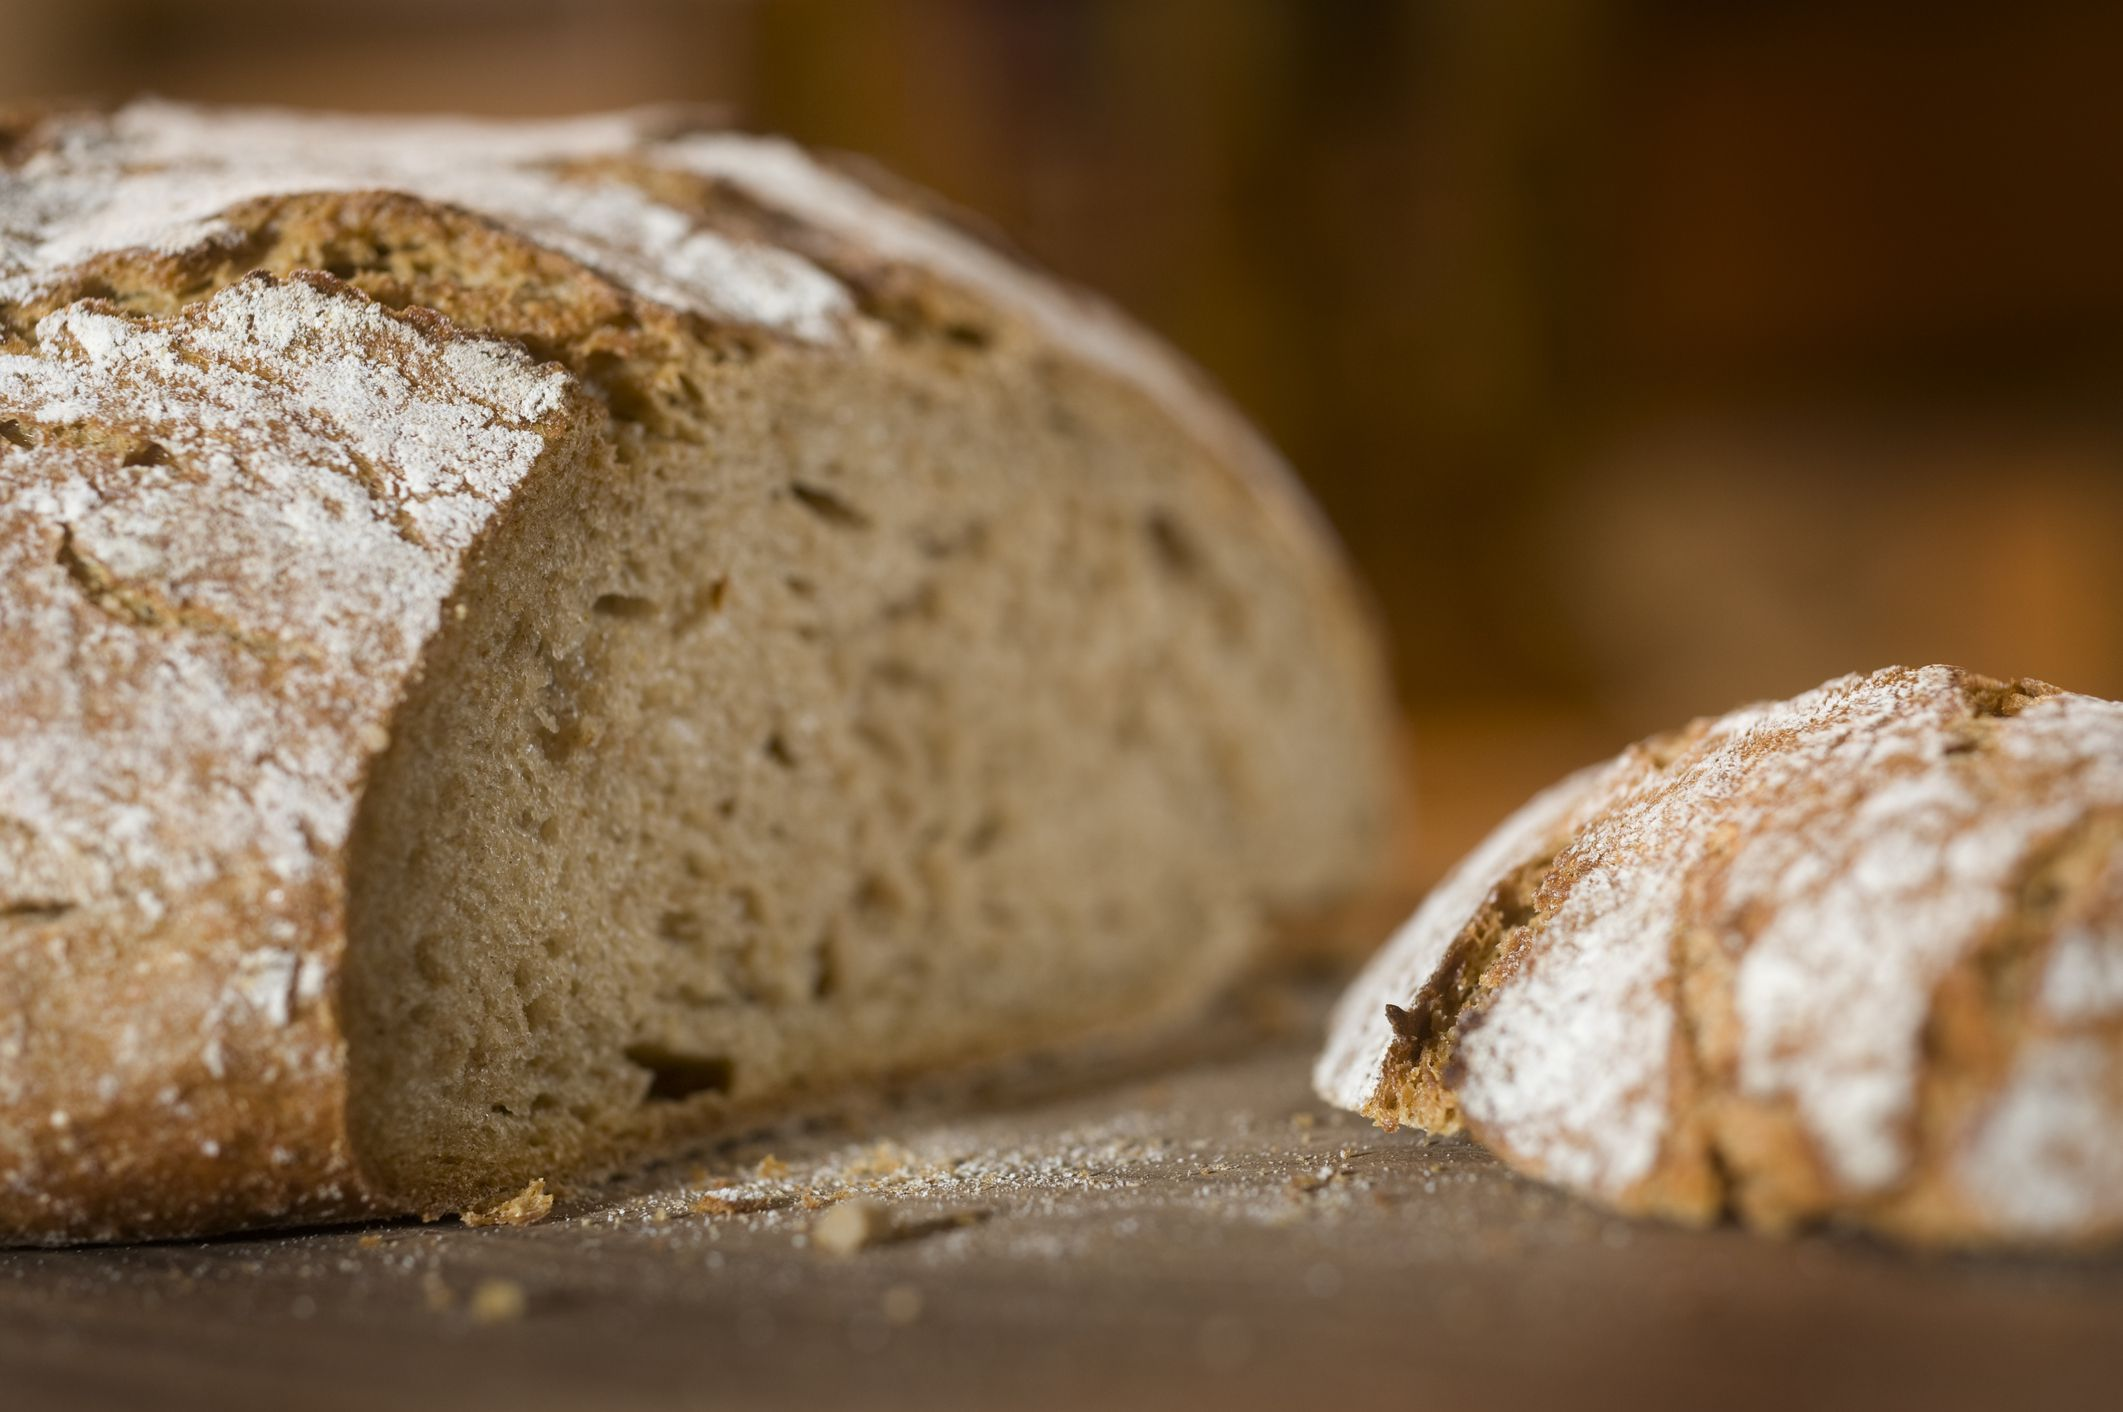 Bauernbrot - German Farmer's Bread